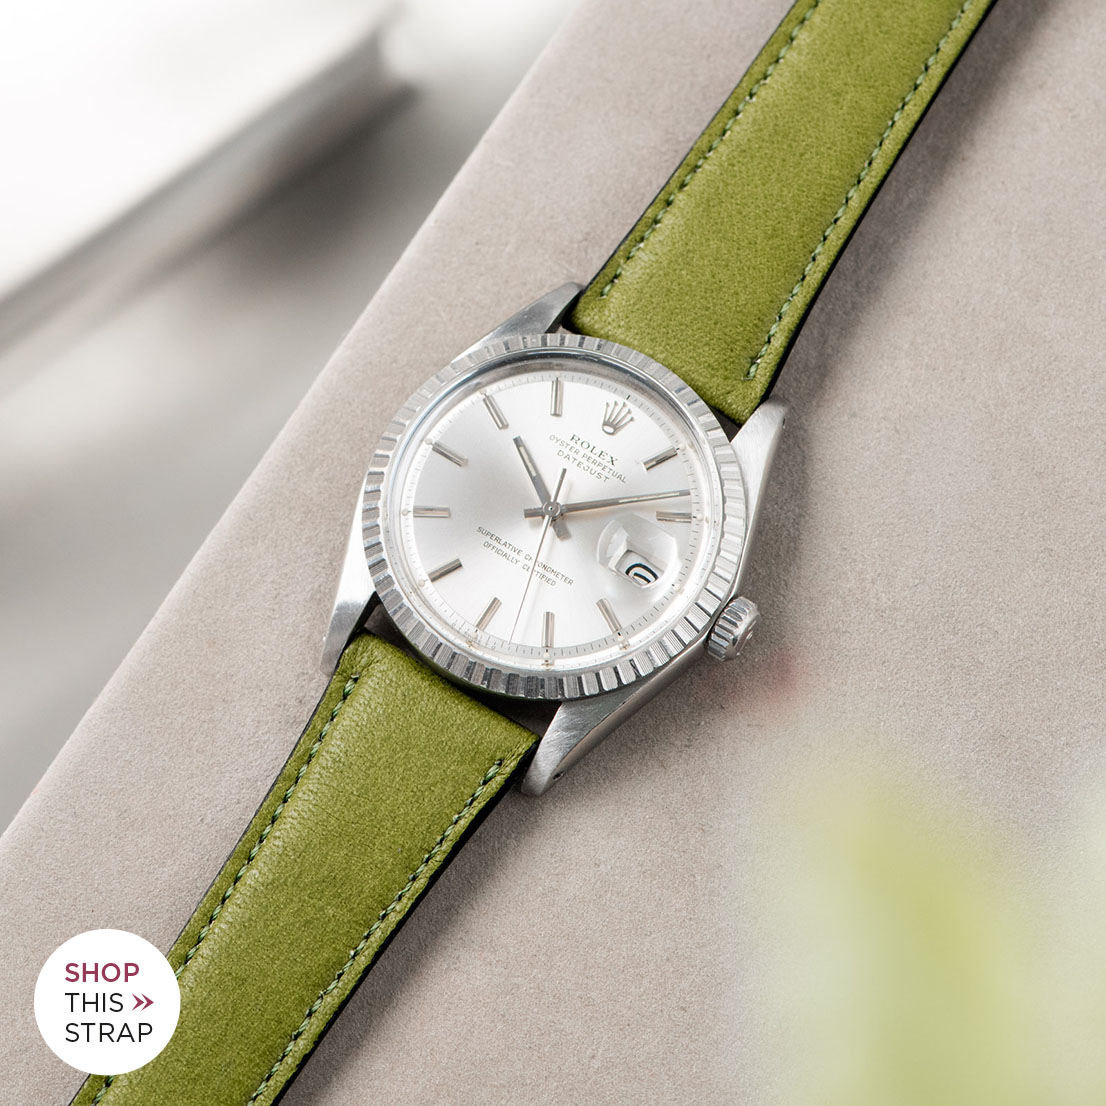 Bulang and sons_Strap Guide_Rolex Datejust Silverdial 1601 1603 1600 1630_CITY GREEN LEATHER WATCH STRAP